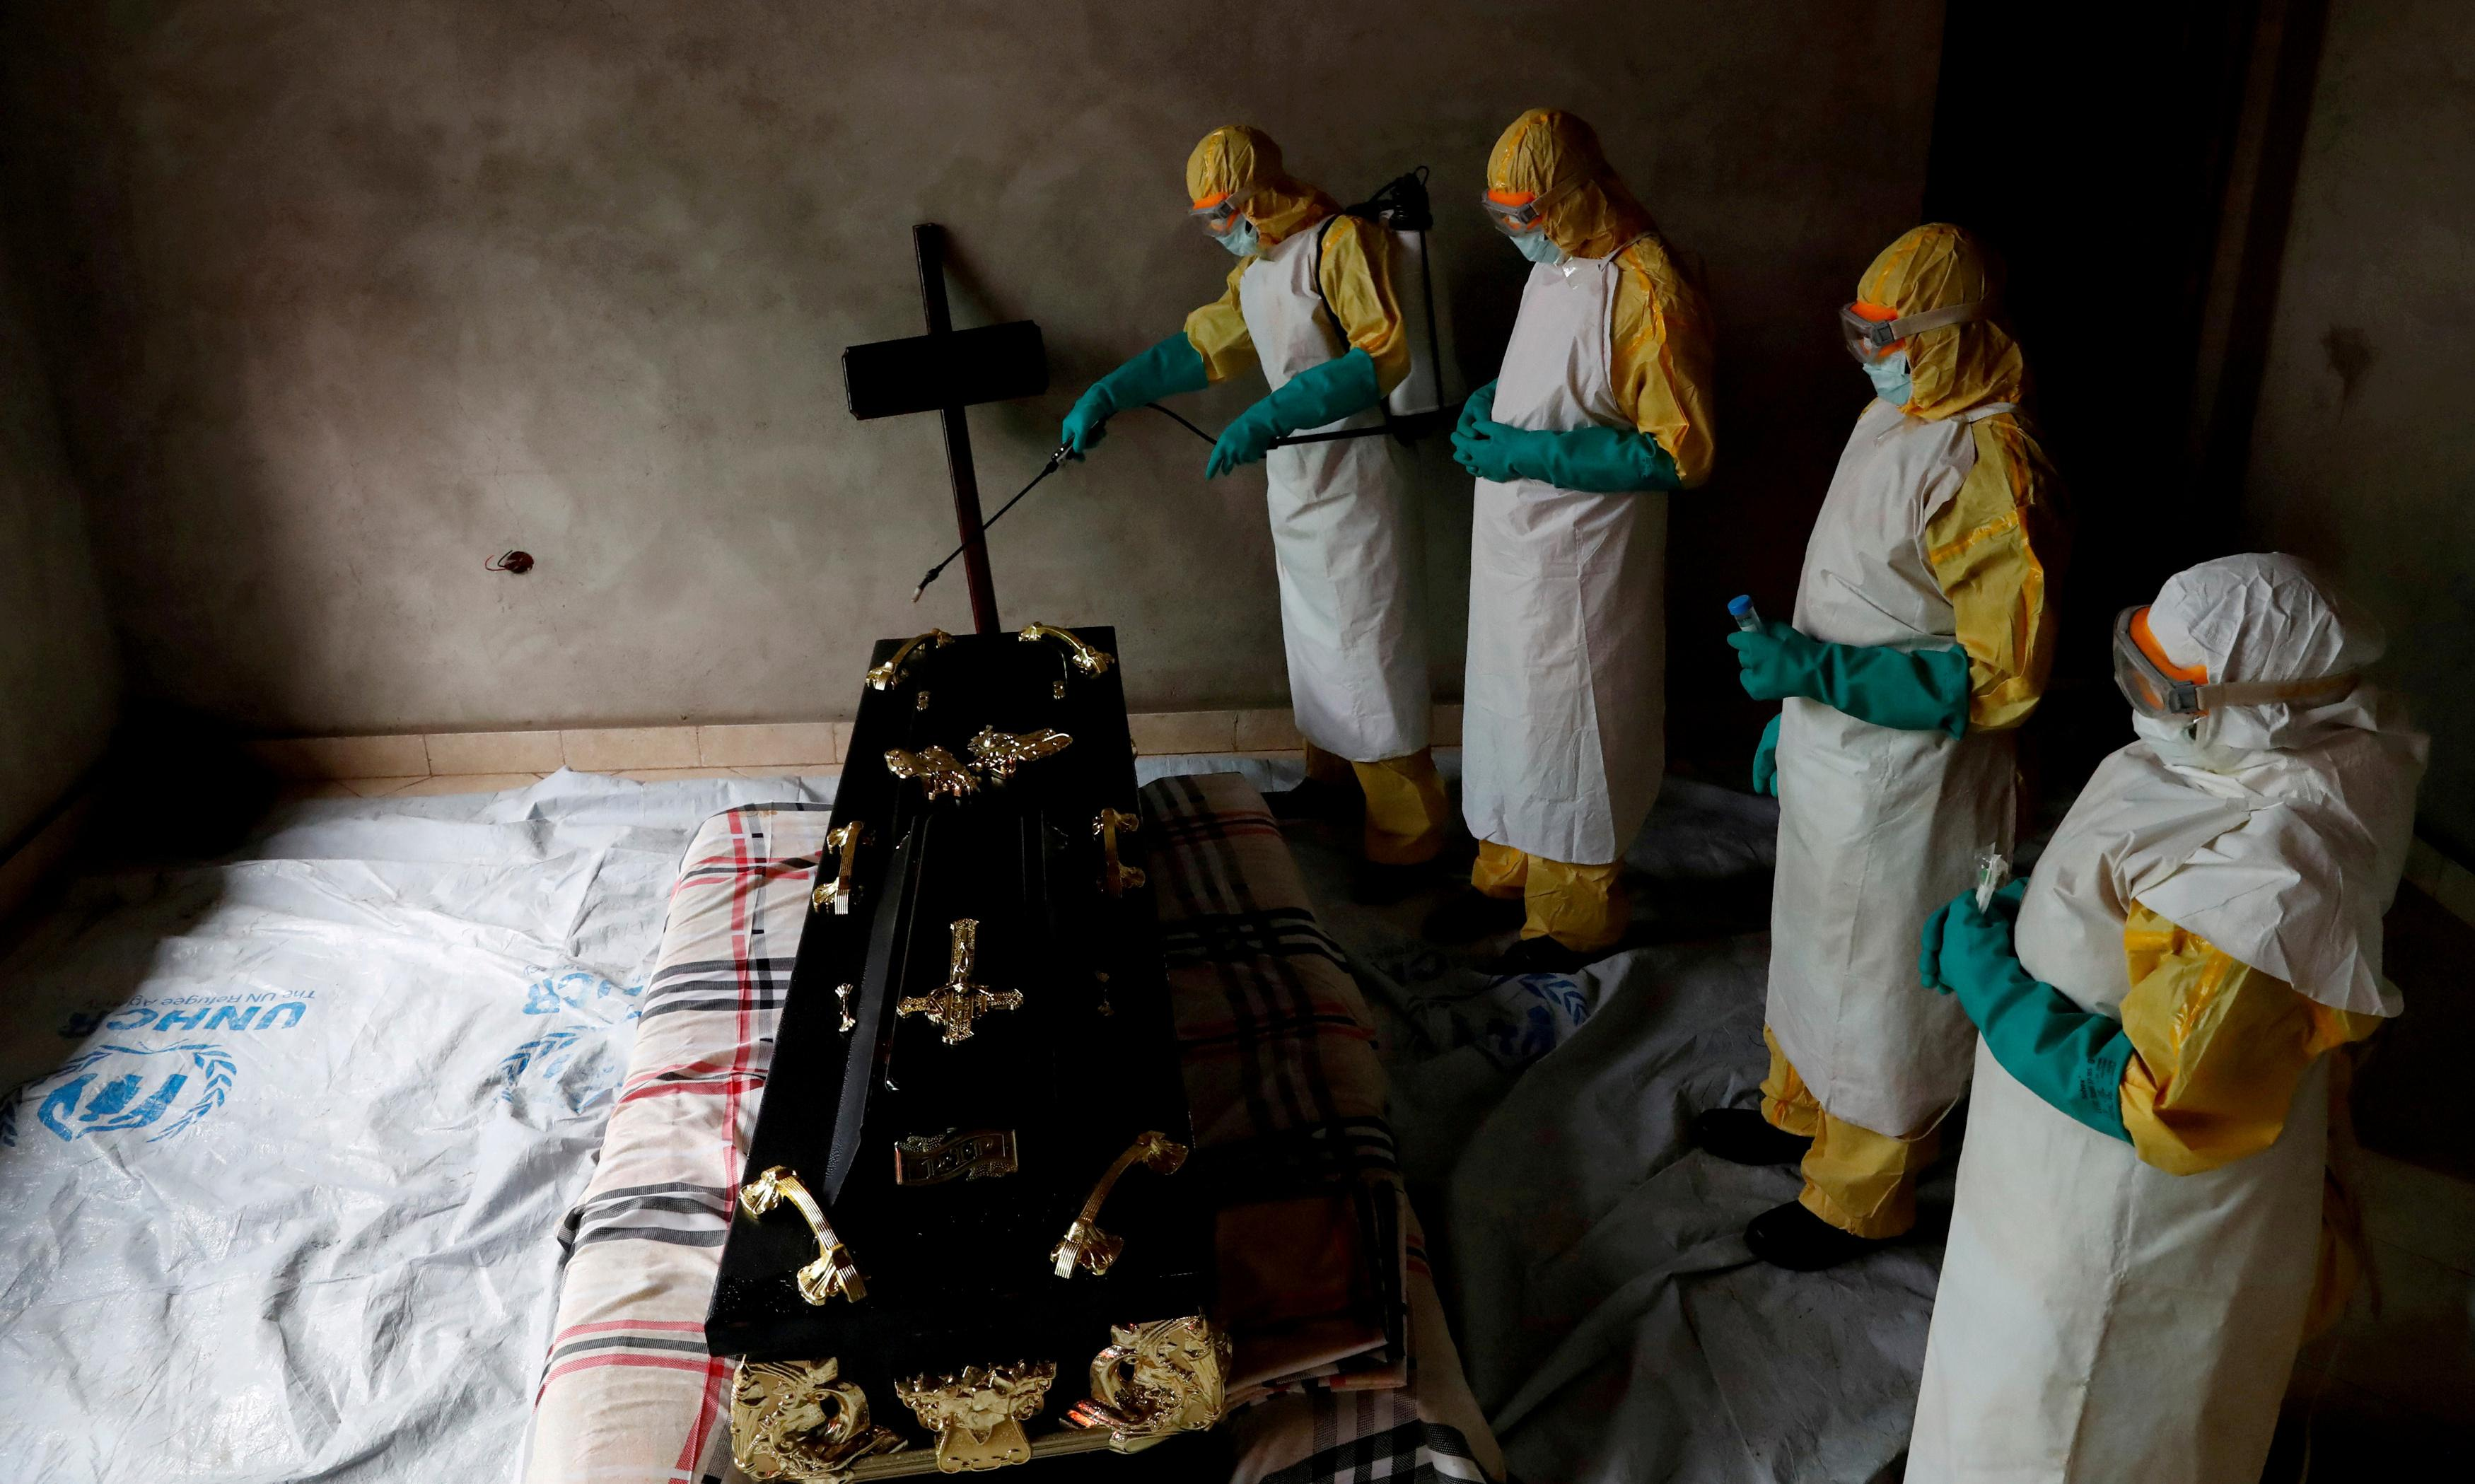 As Ebola kills in Africa, in the west lies over vaccines beguile the complacent